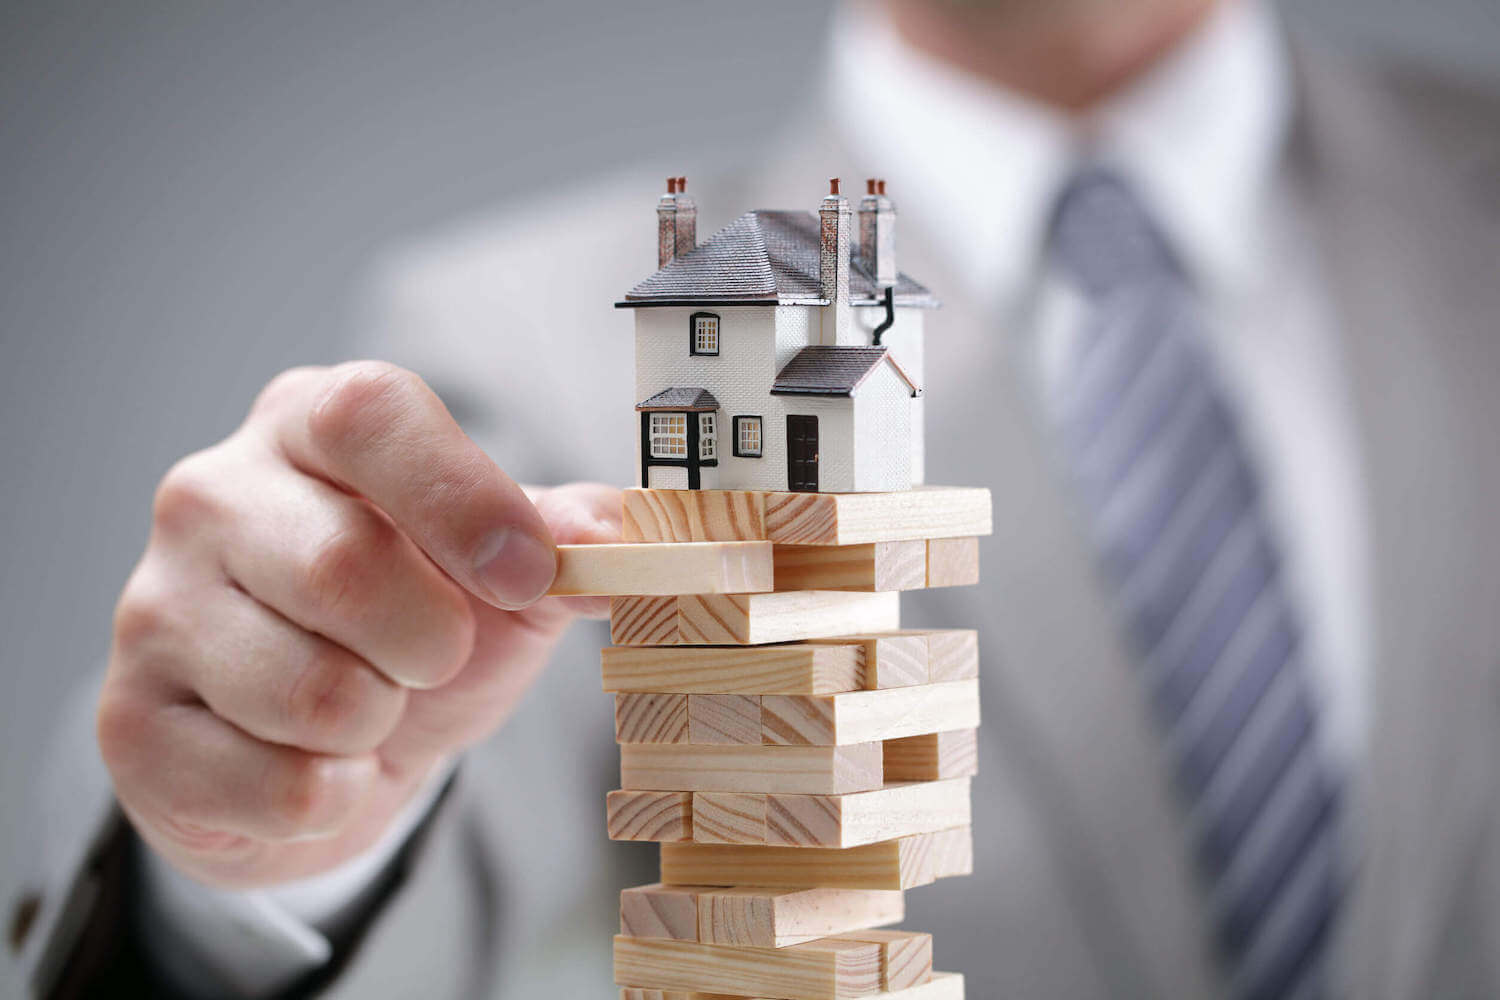 We Buy Your House In Cash! How?